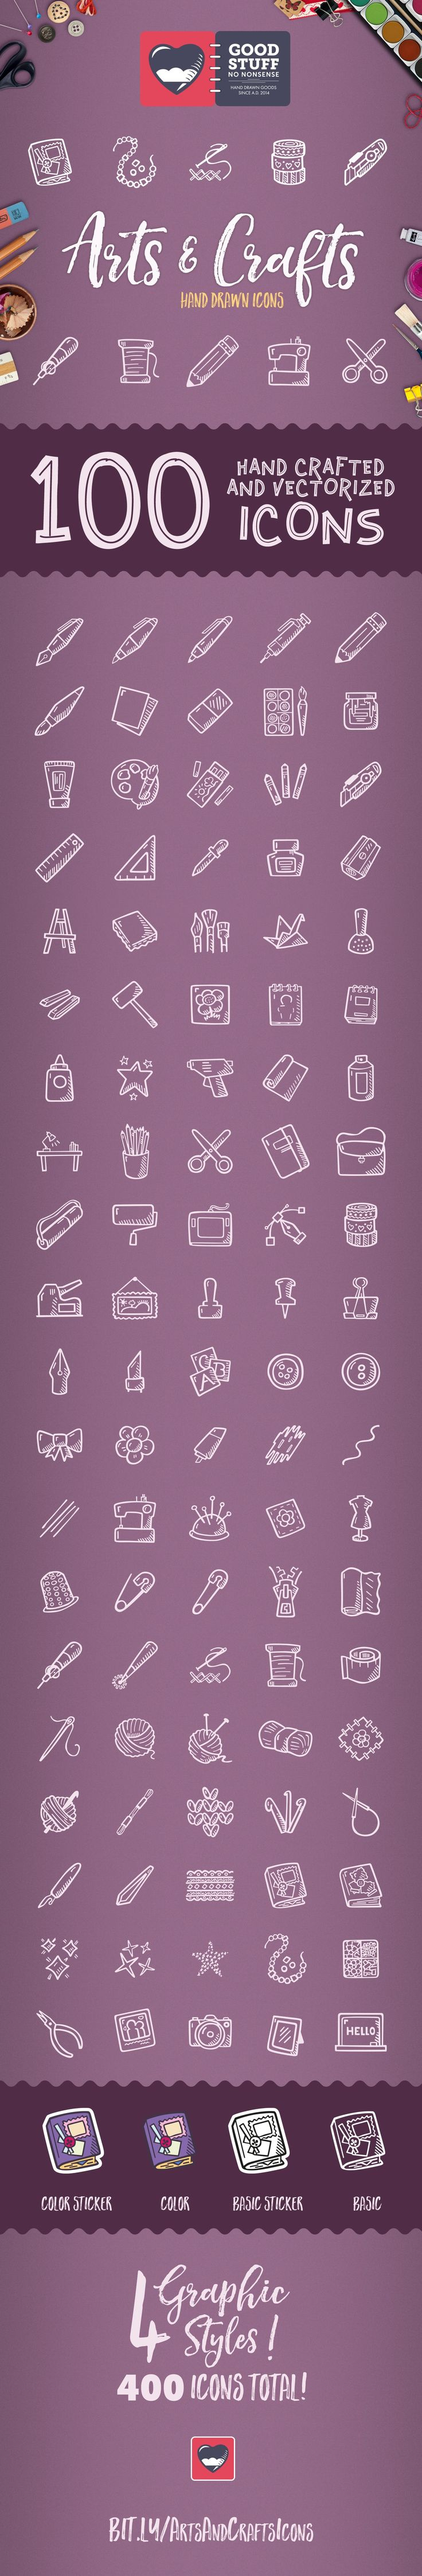 Arts & Crafts made by @weboutloud #handdrawn #icons #iconsets #handdrawnicons #doodle #drawing #clipart #tinyart #icon #icondesign #iconset #sketch #illustration #hobby #scrapbooking #crocheting #drawing #sewing